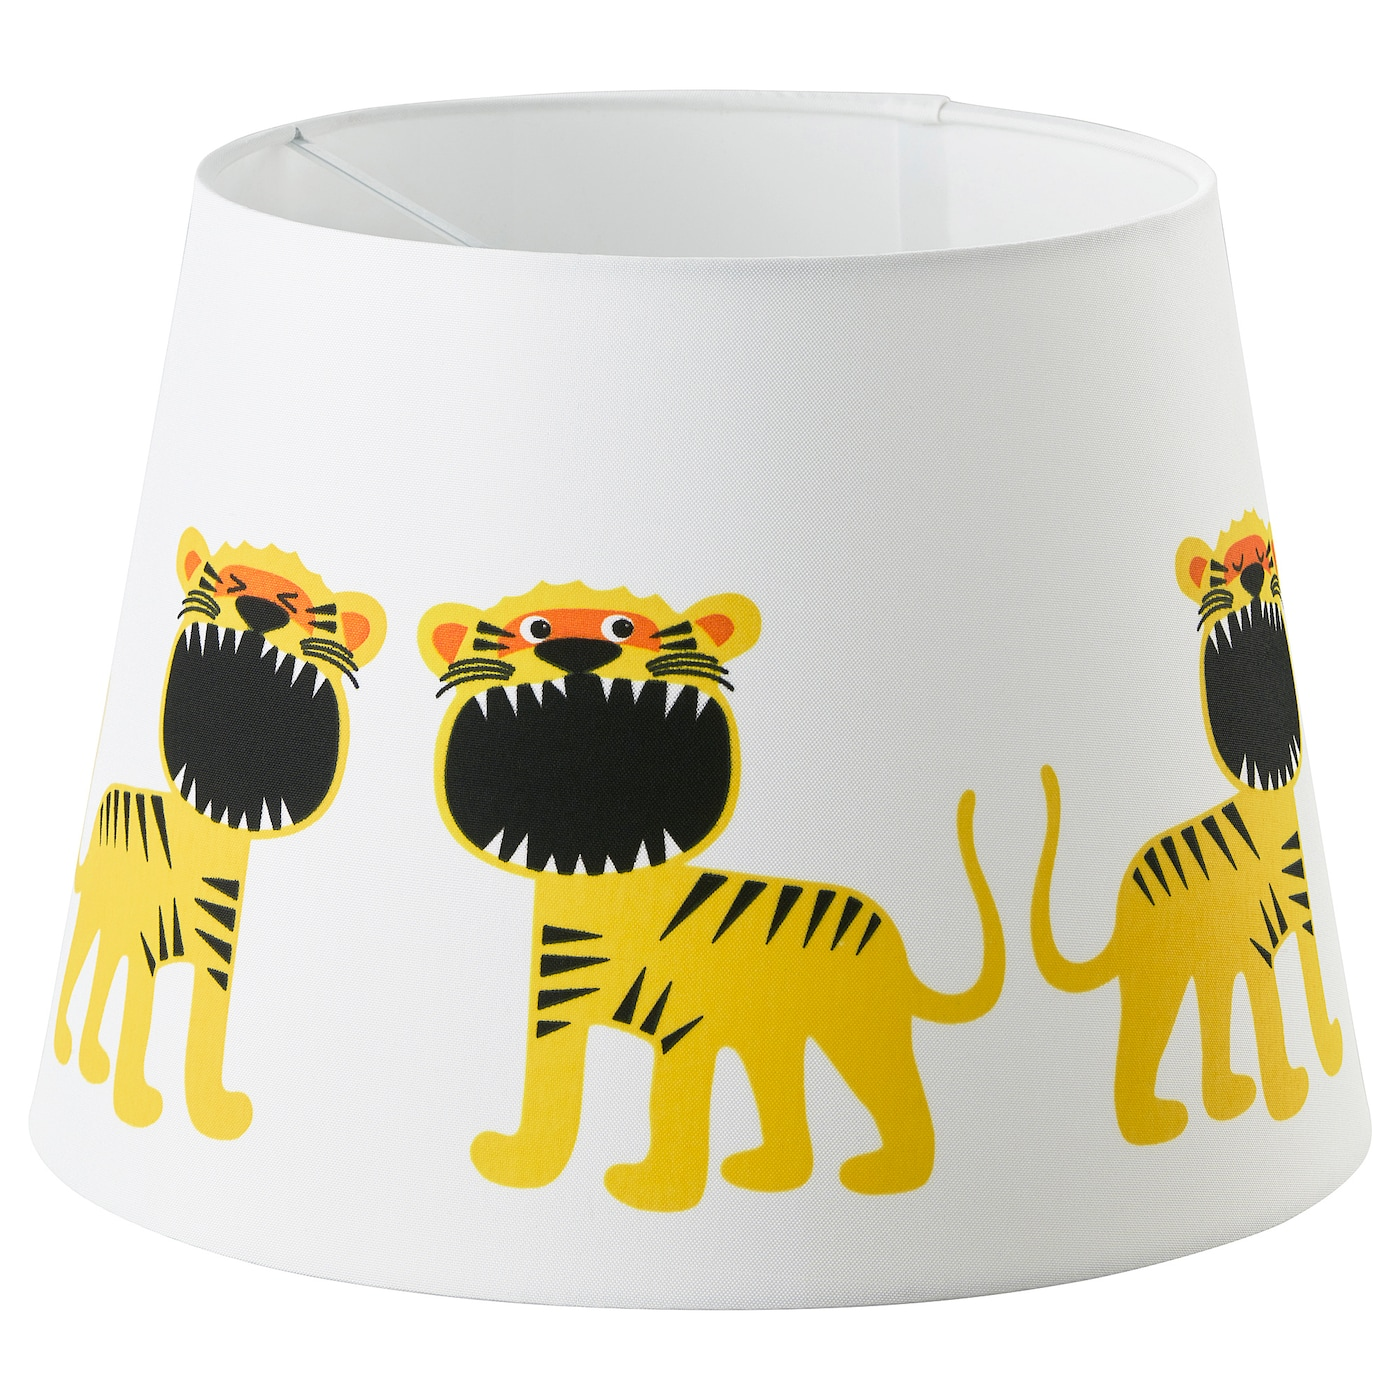 IKEA TROLLAKULLA lamp shade Tested and approved for children.